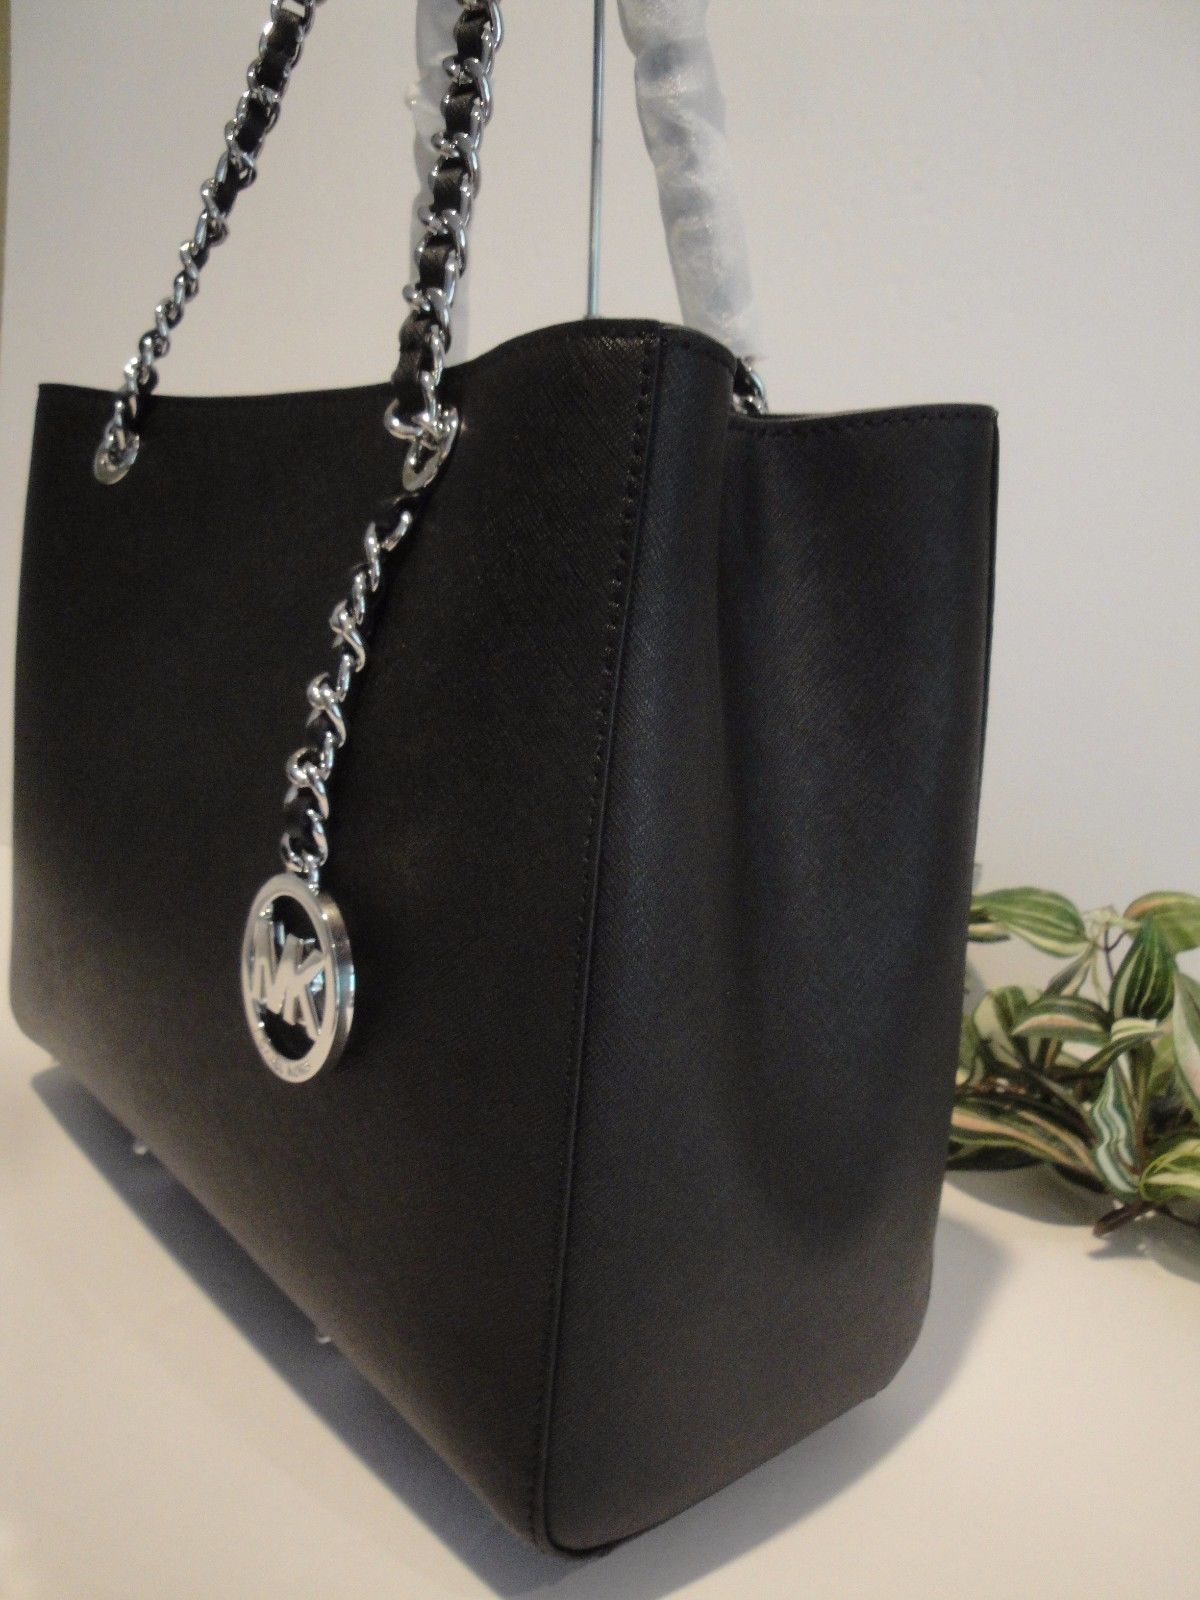 1a42553de2d9 ... sale michael kors susannah large tote bag satchel saffiano leather 398  black silver 179.99 http fc76c